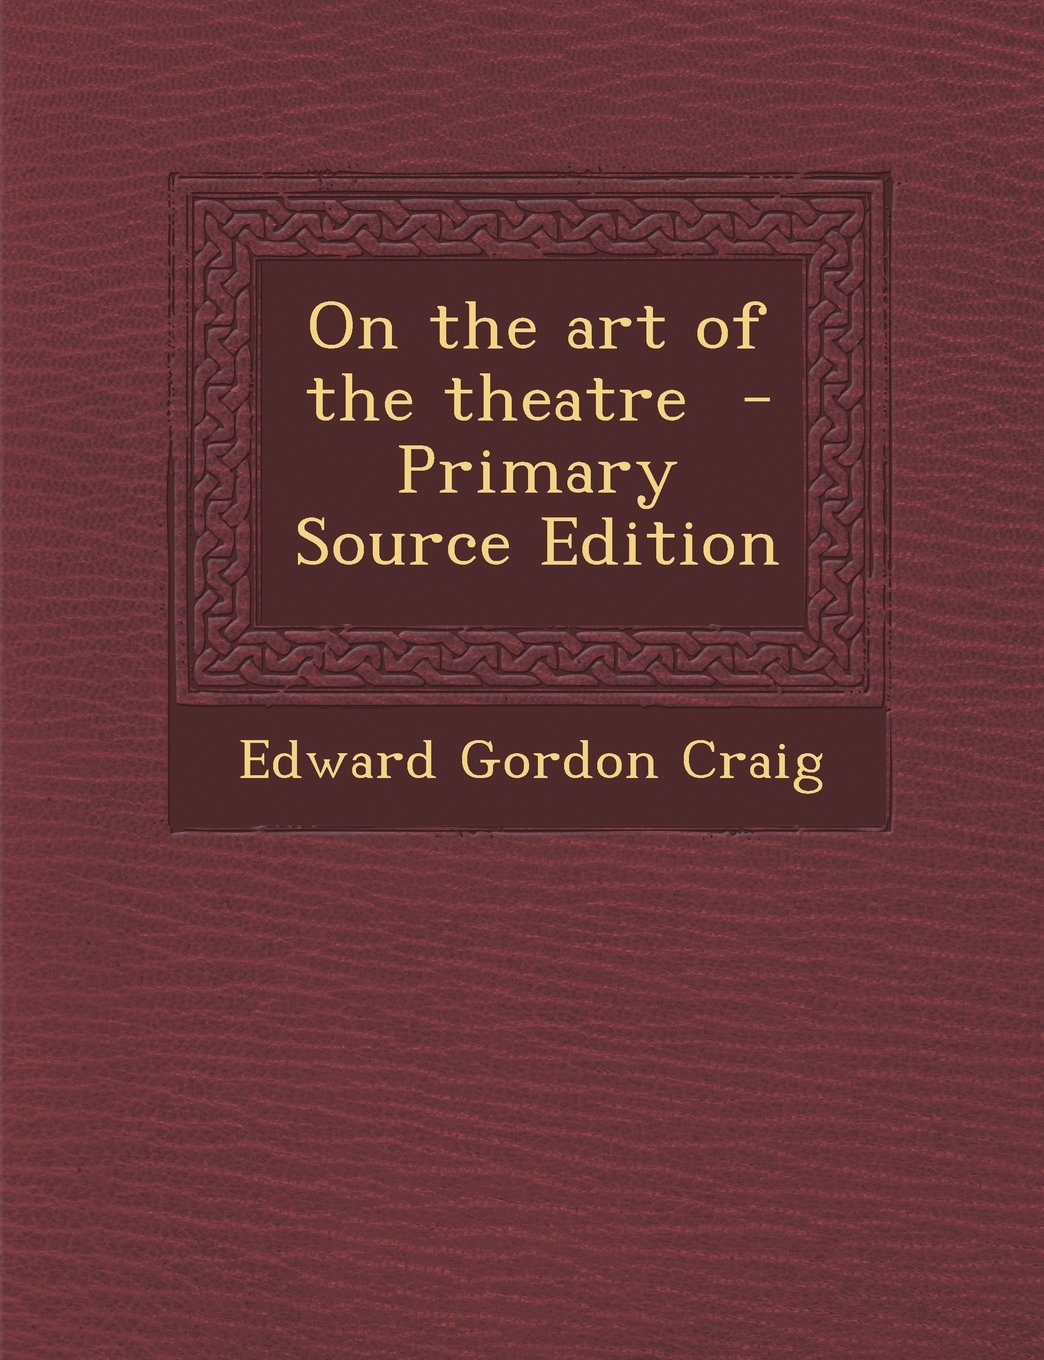 On the art of the theatre  - Primary Source Edition ebook